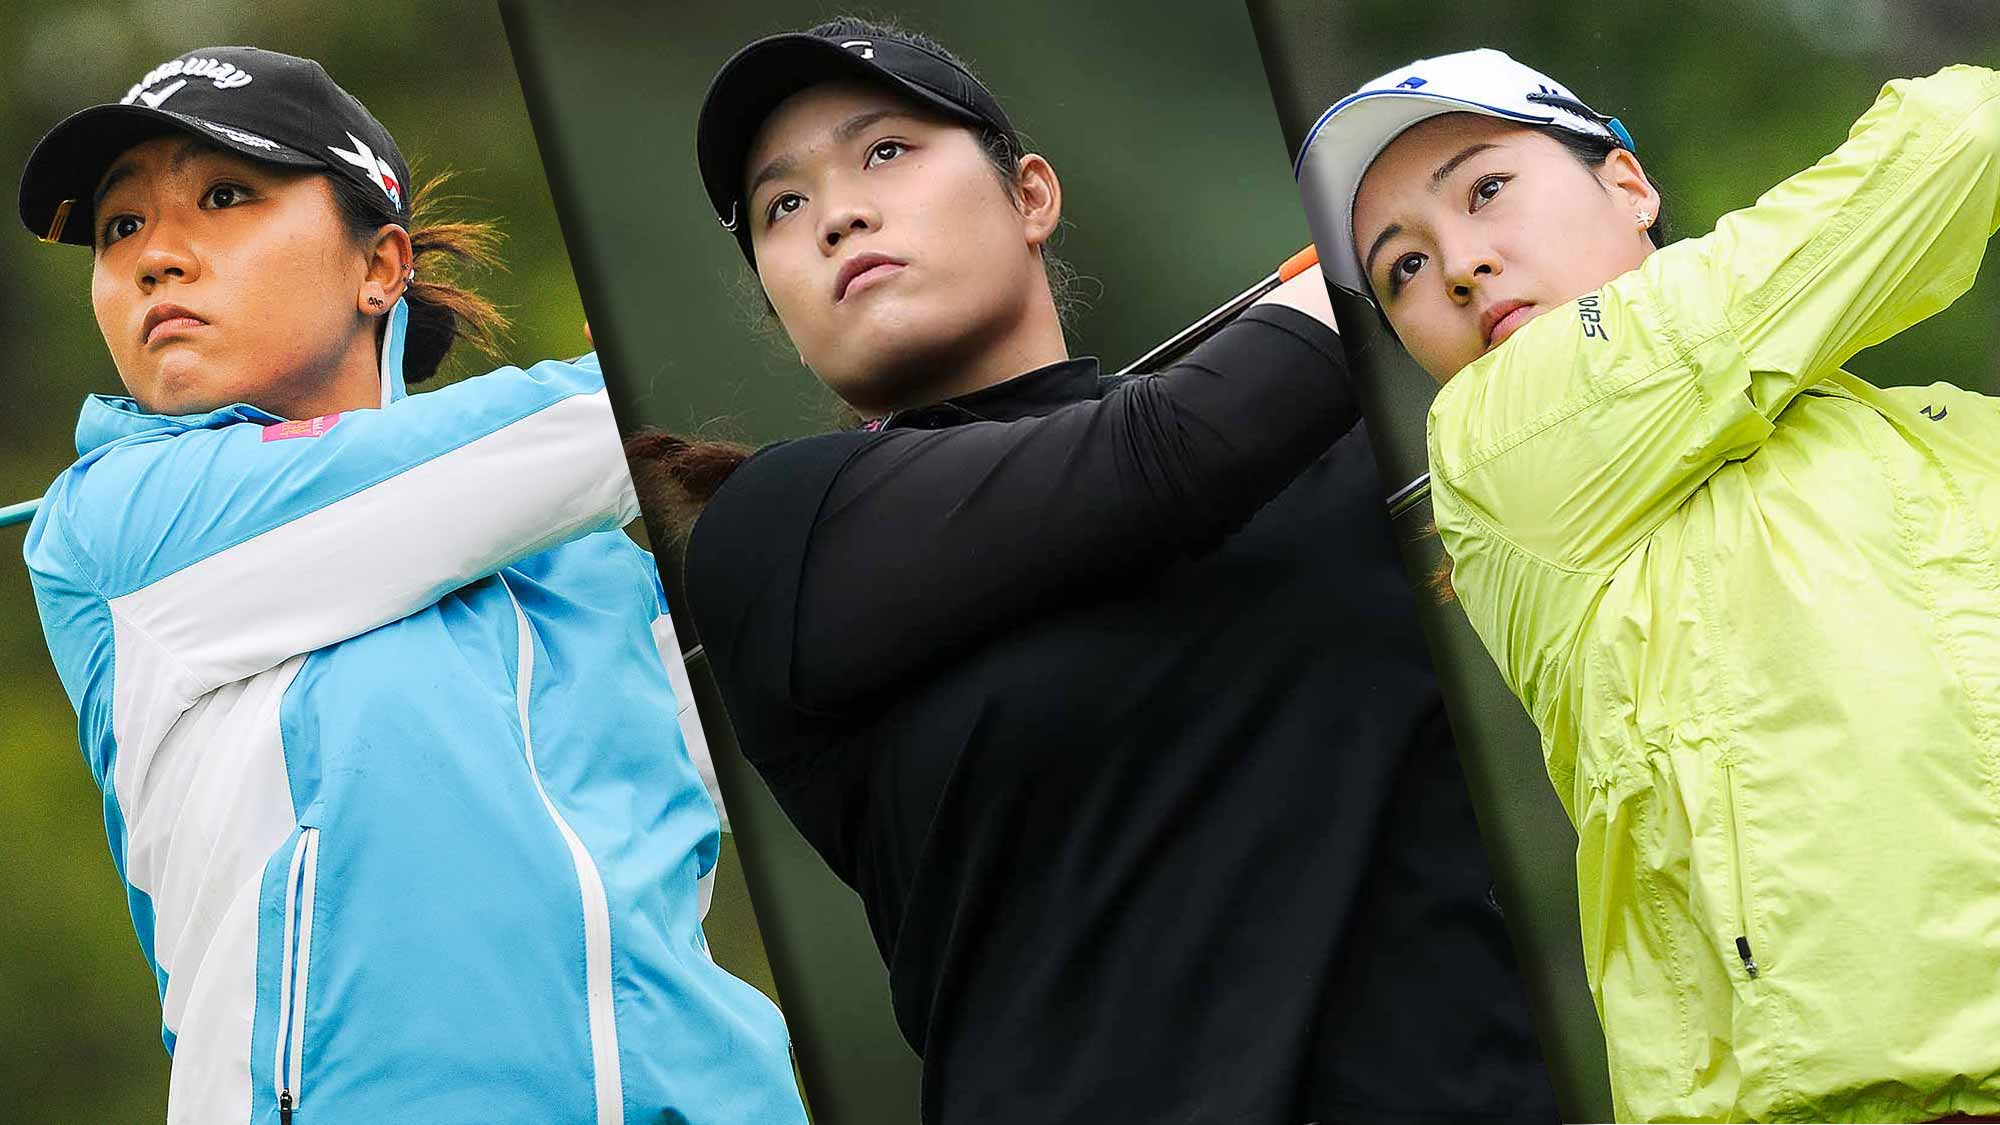 Lydia Ko, Ariya Jutanugarn and In Gee Chun